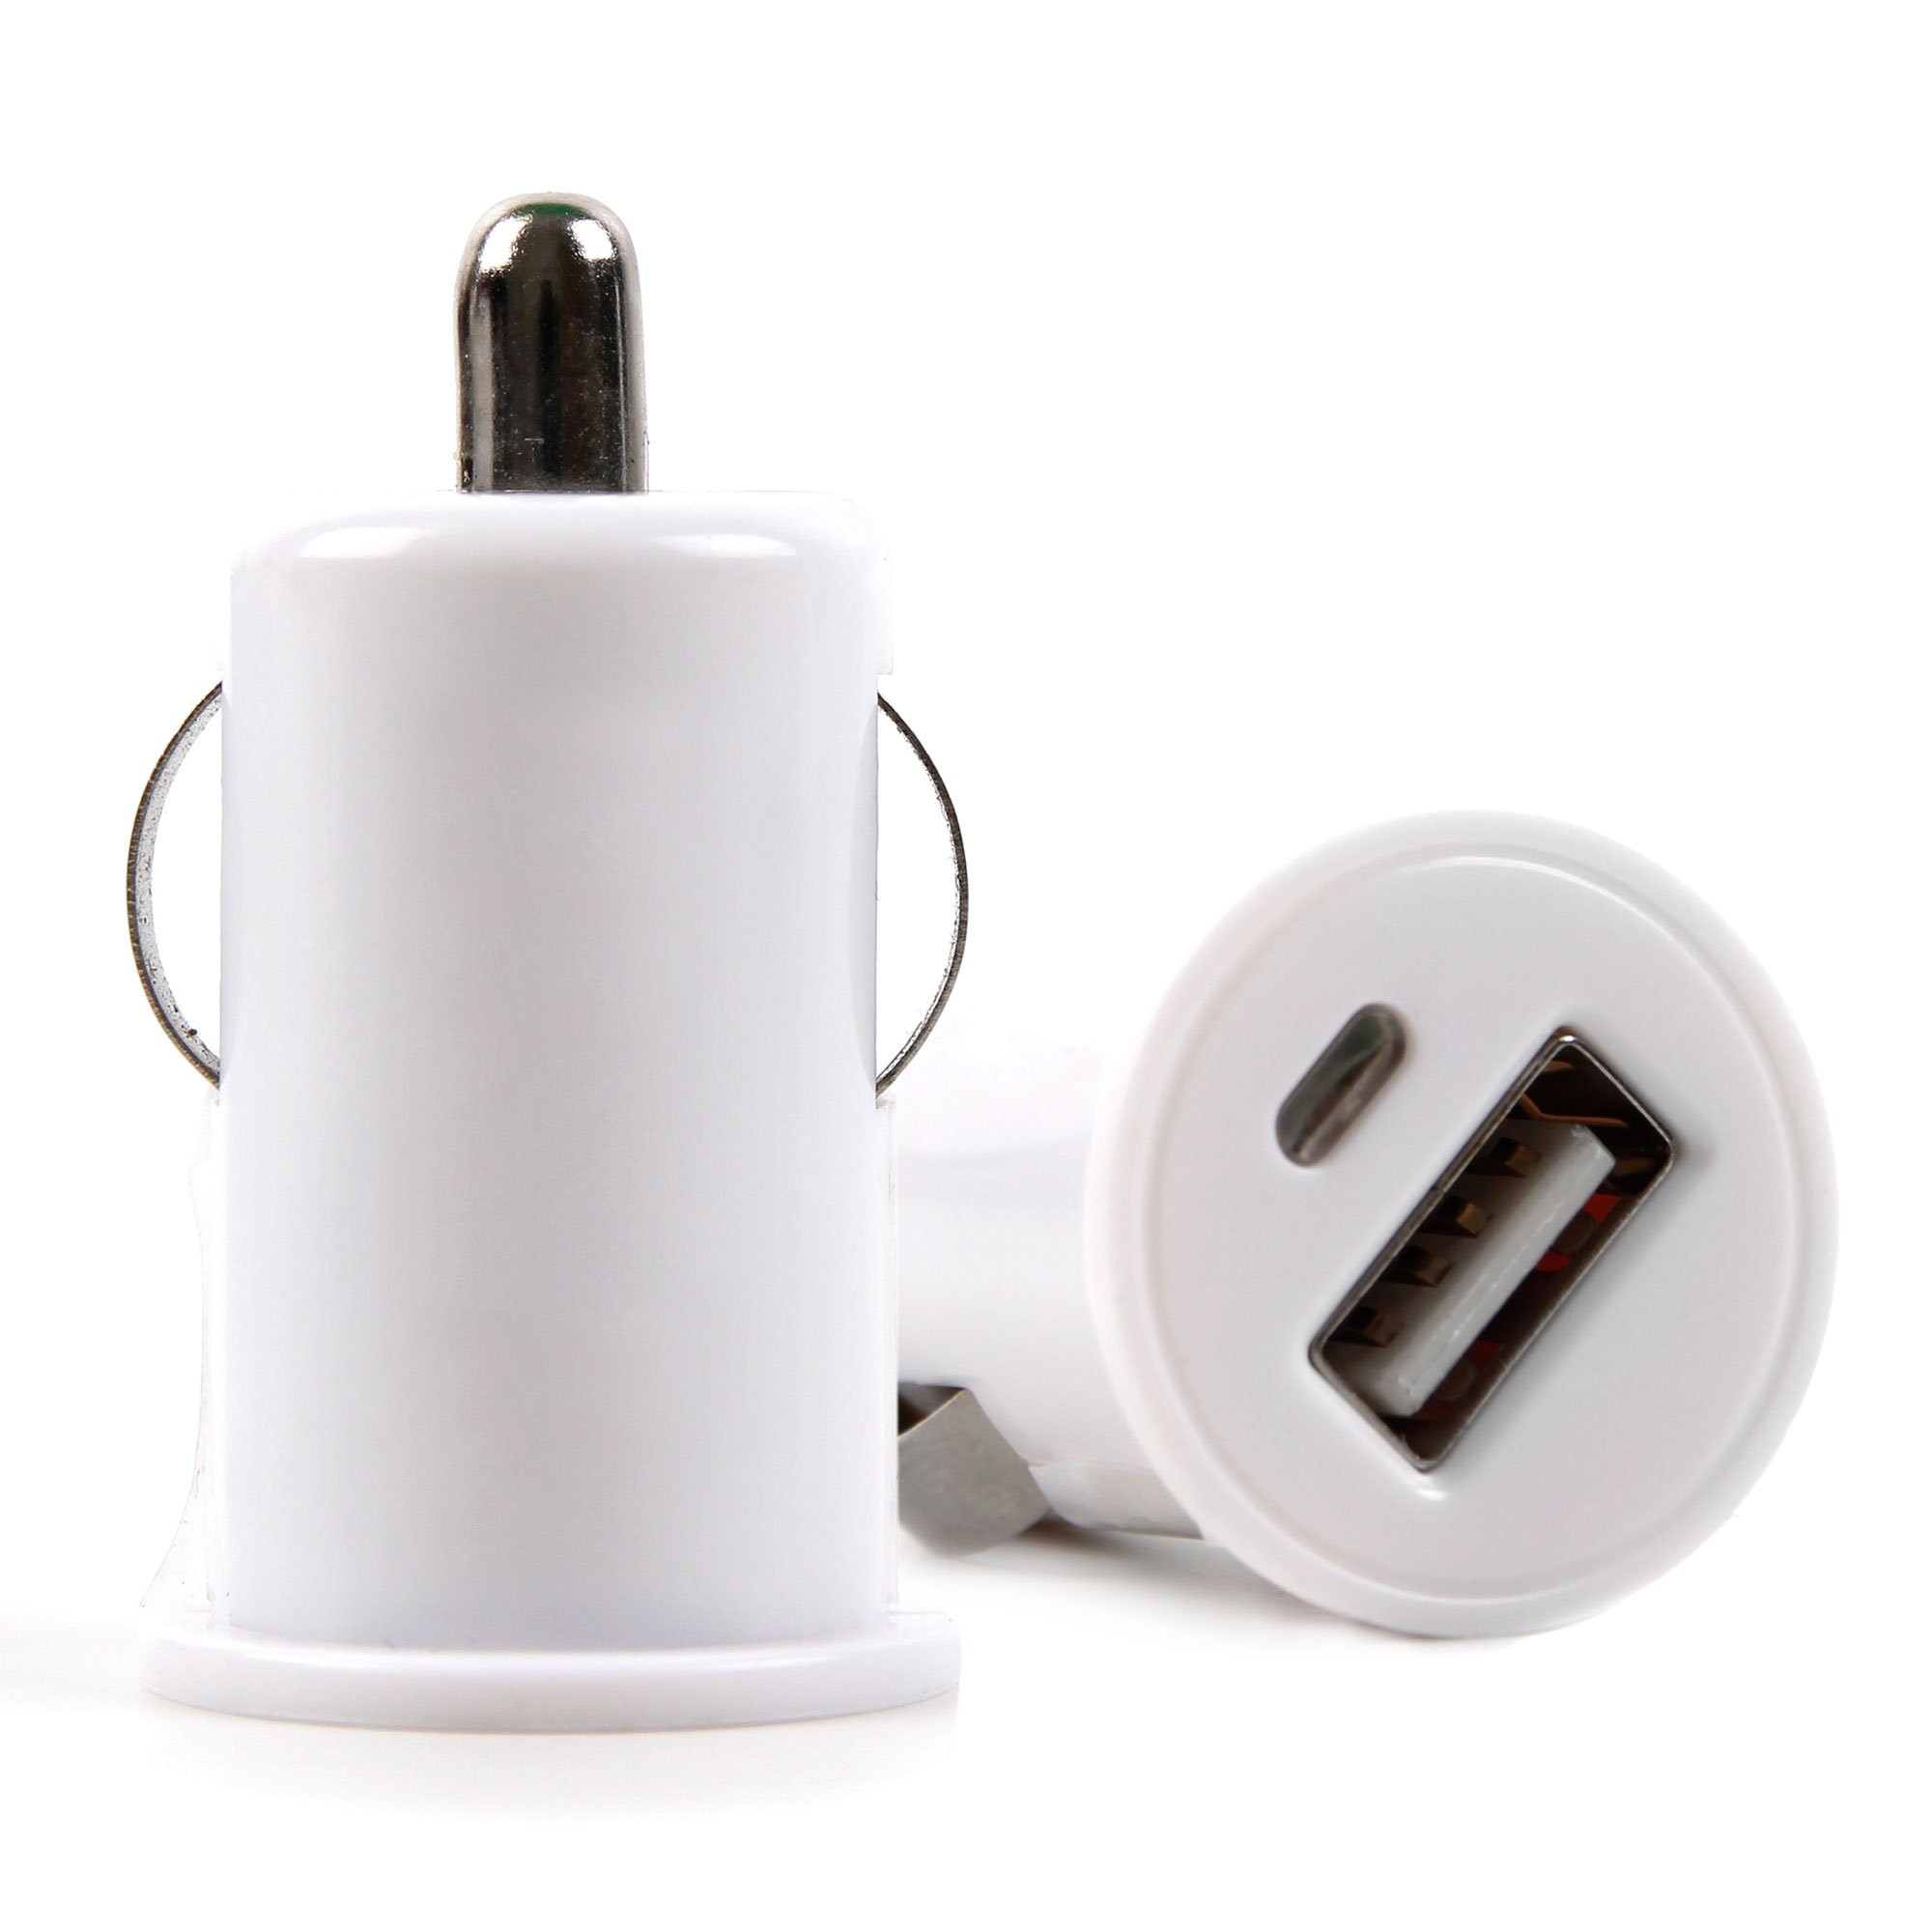 """DURAGADGET White USB Satnav in Car Charger - Compatible with Garmin Drive 51LMT-S 5""""   Zumo 345LM   346LMT-S   396LMT-S   595LM"""